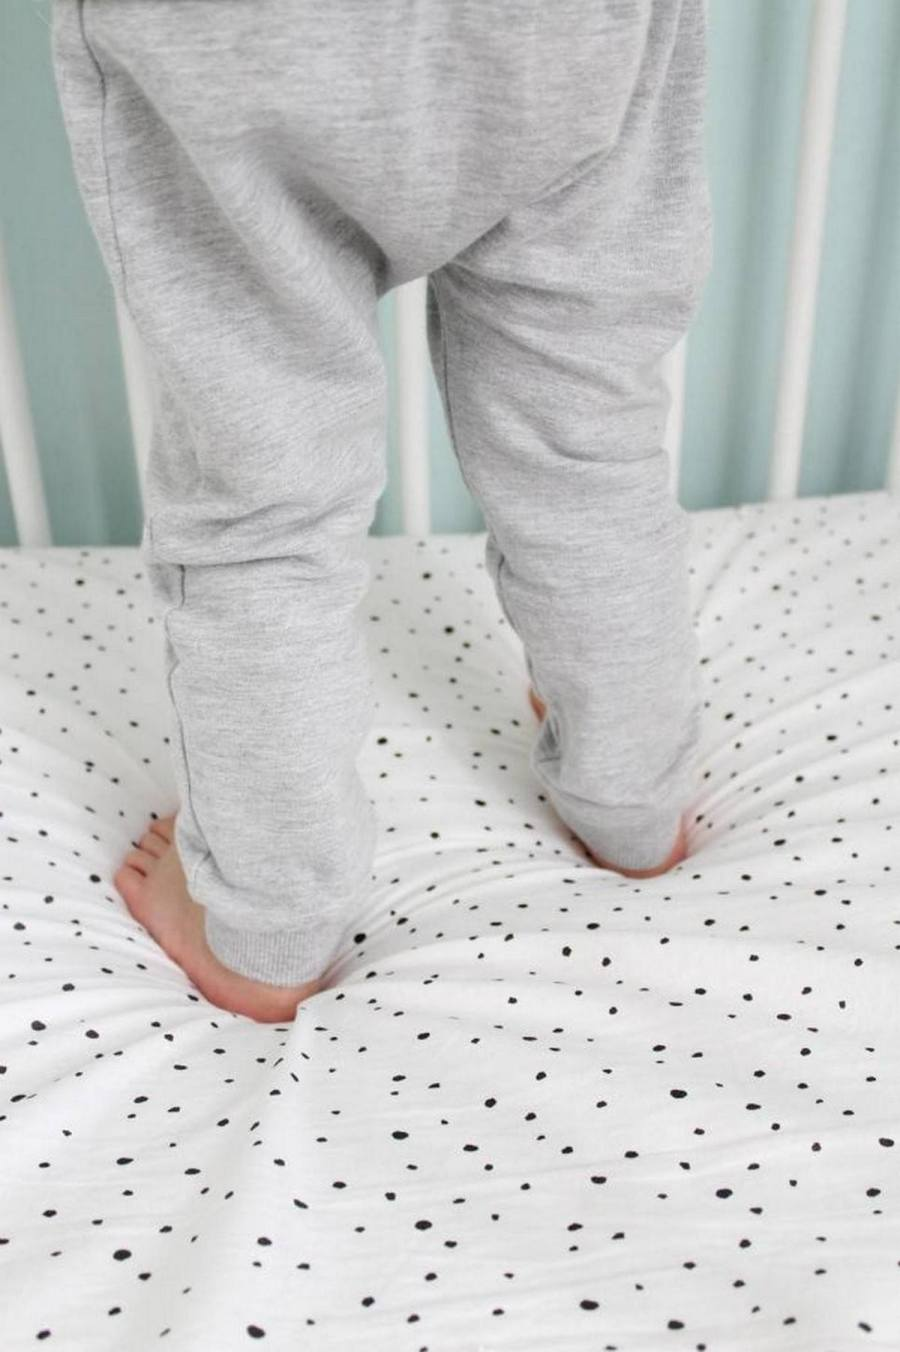 A cot sheet is bigger than a baby crib sheet, since this sheet has to fit in a cot bed. A cot sheet is 150x120 cm and is combined with a cot blanket: the sheet goes underneath and the blanket goes on top. Then the sheet is folded.